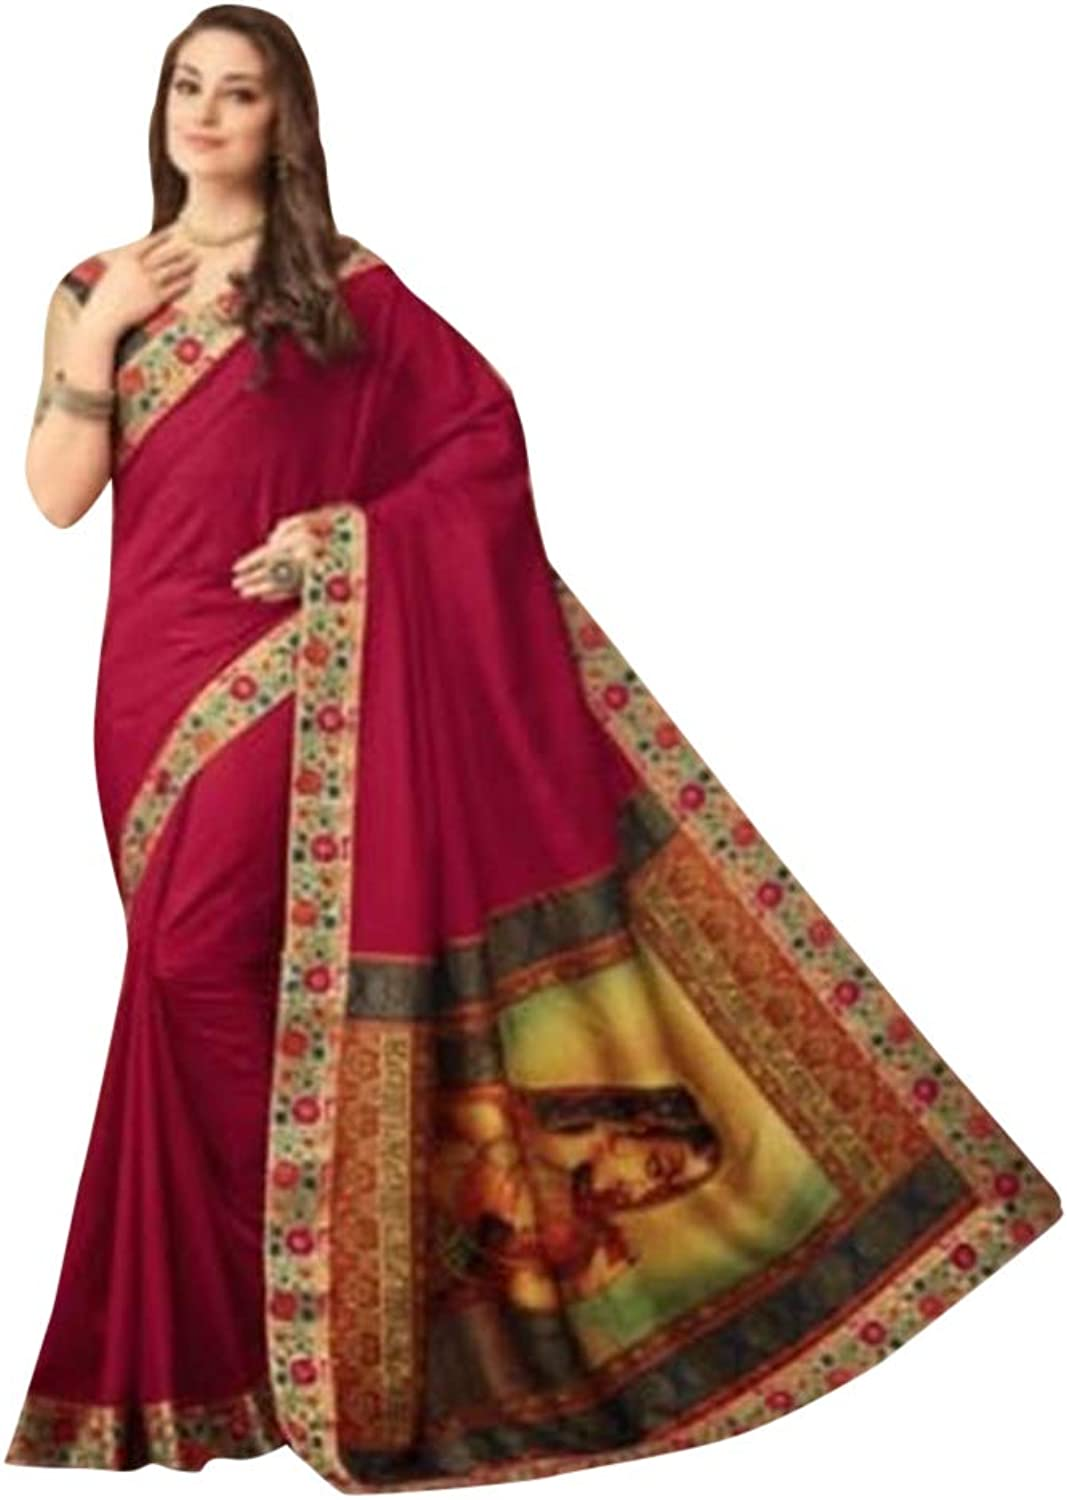 Magenta Stylish Indian Burmese Silk Saree with Blouse Designer Sari for Women Party Festive wear 7537